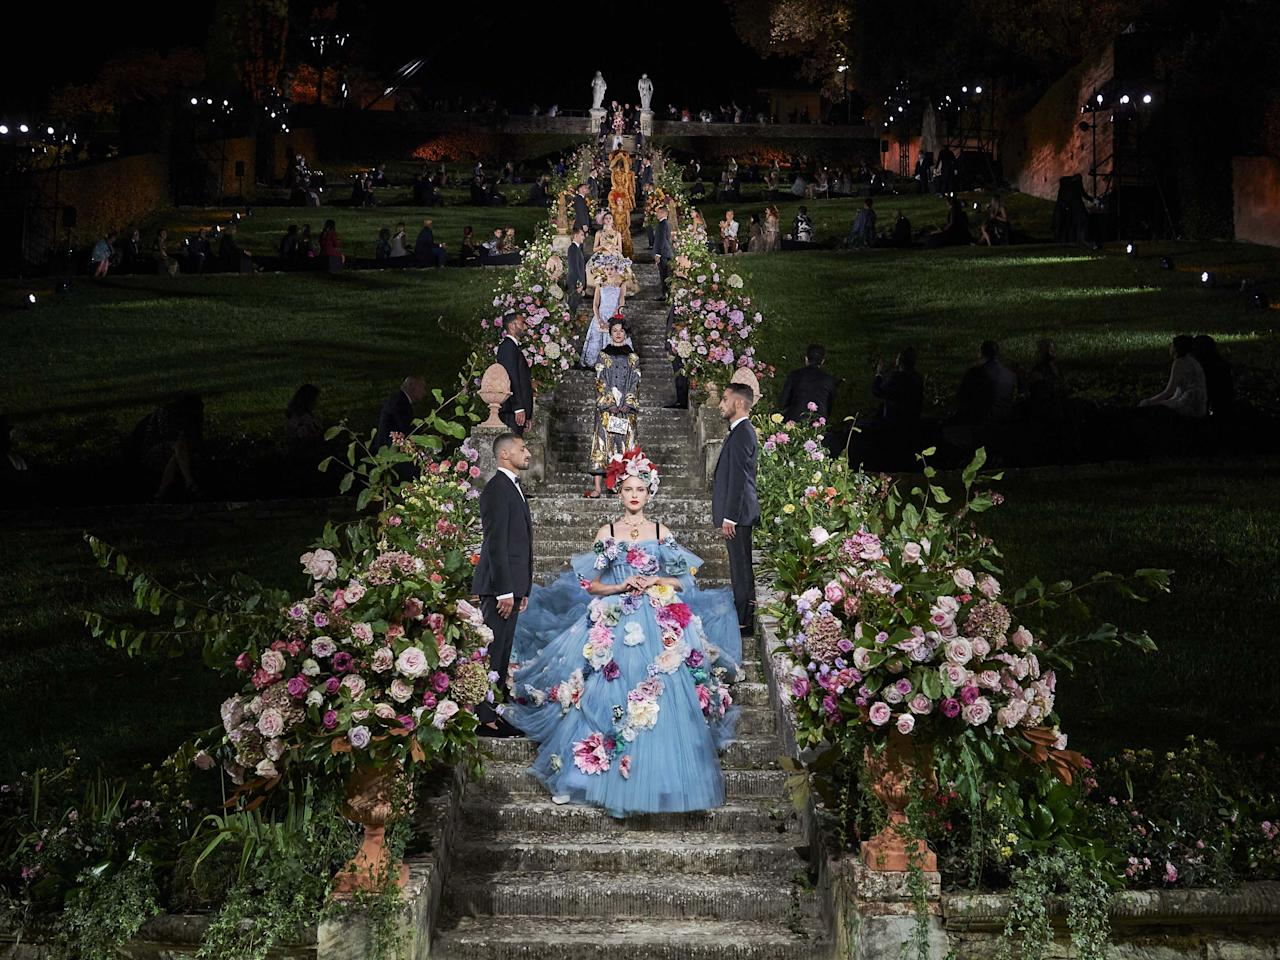 "<p>Last night, Dolce & Gabbana gathered the fashion world together for one of the first major occasions since the coronavirus pandemic began – and the house certainly delivered in reminding everybody of the magic of the fashion show. Housed at the Villa Bardini in Florence yesterday evening, the Italian label presented a breathtaking collection of 89 runway looks, which saw the models walk down the long stone staircase, showcasing pieces which were designed as a tribute to Florence.</p><p>""The inspiration came from the Sixteenth century and the Italian Renaissance,"" designers Domenico Dolce and Stefano Gabbana said in a press release. ""In this historical period, the tailors – and especially the Florentine artisans - created clothes and accessories with what they had in their workshops (the so called botteghe), mixing different materials through the lens of their great creativity. By using and combining elements and materials such as natural or coloured raffia, corals and hard stones, they gave birth to the concept of Arte Povera (Poor Art).""</p><p>The elegance of the colourful collections was all about representing Italian beauty and the flair of Florence. Embroidery, embellishment, 3D flowers and beautiful tulle made up some of the most remarkable pieces. </p><p>Scroll through to see highlights and close-ups from the catwalk, backstage and of the spectacular fireworks display.</p>"